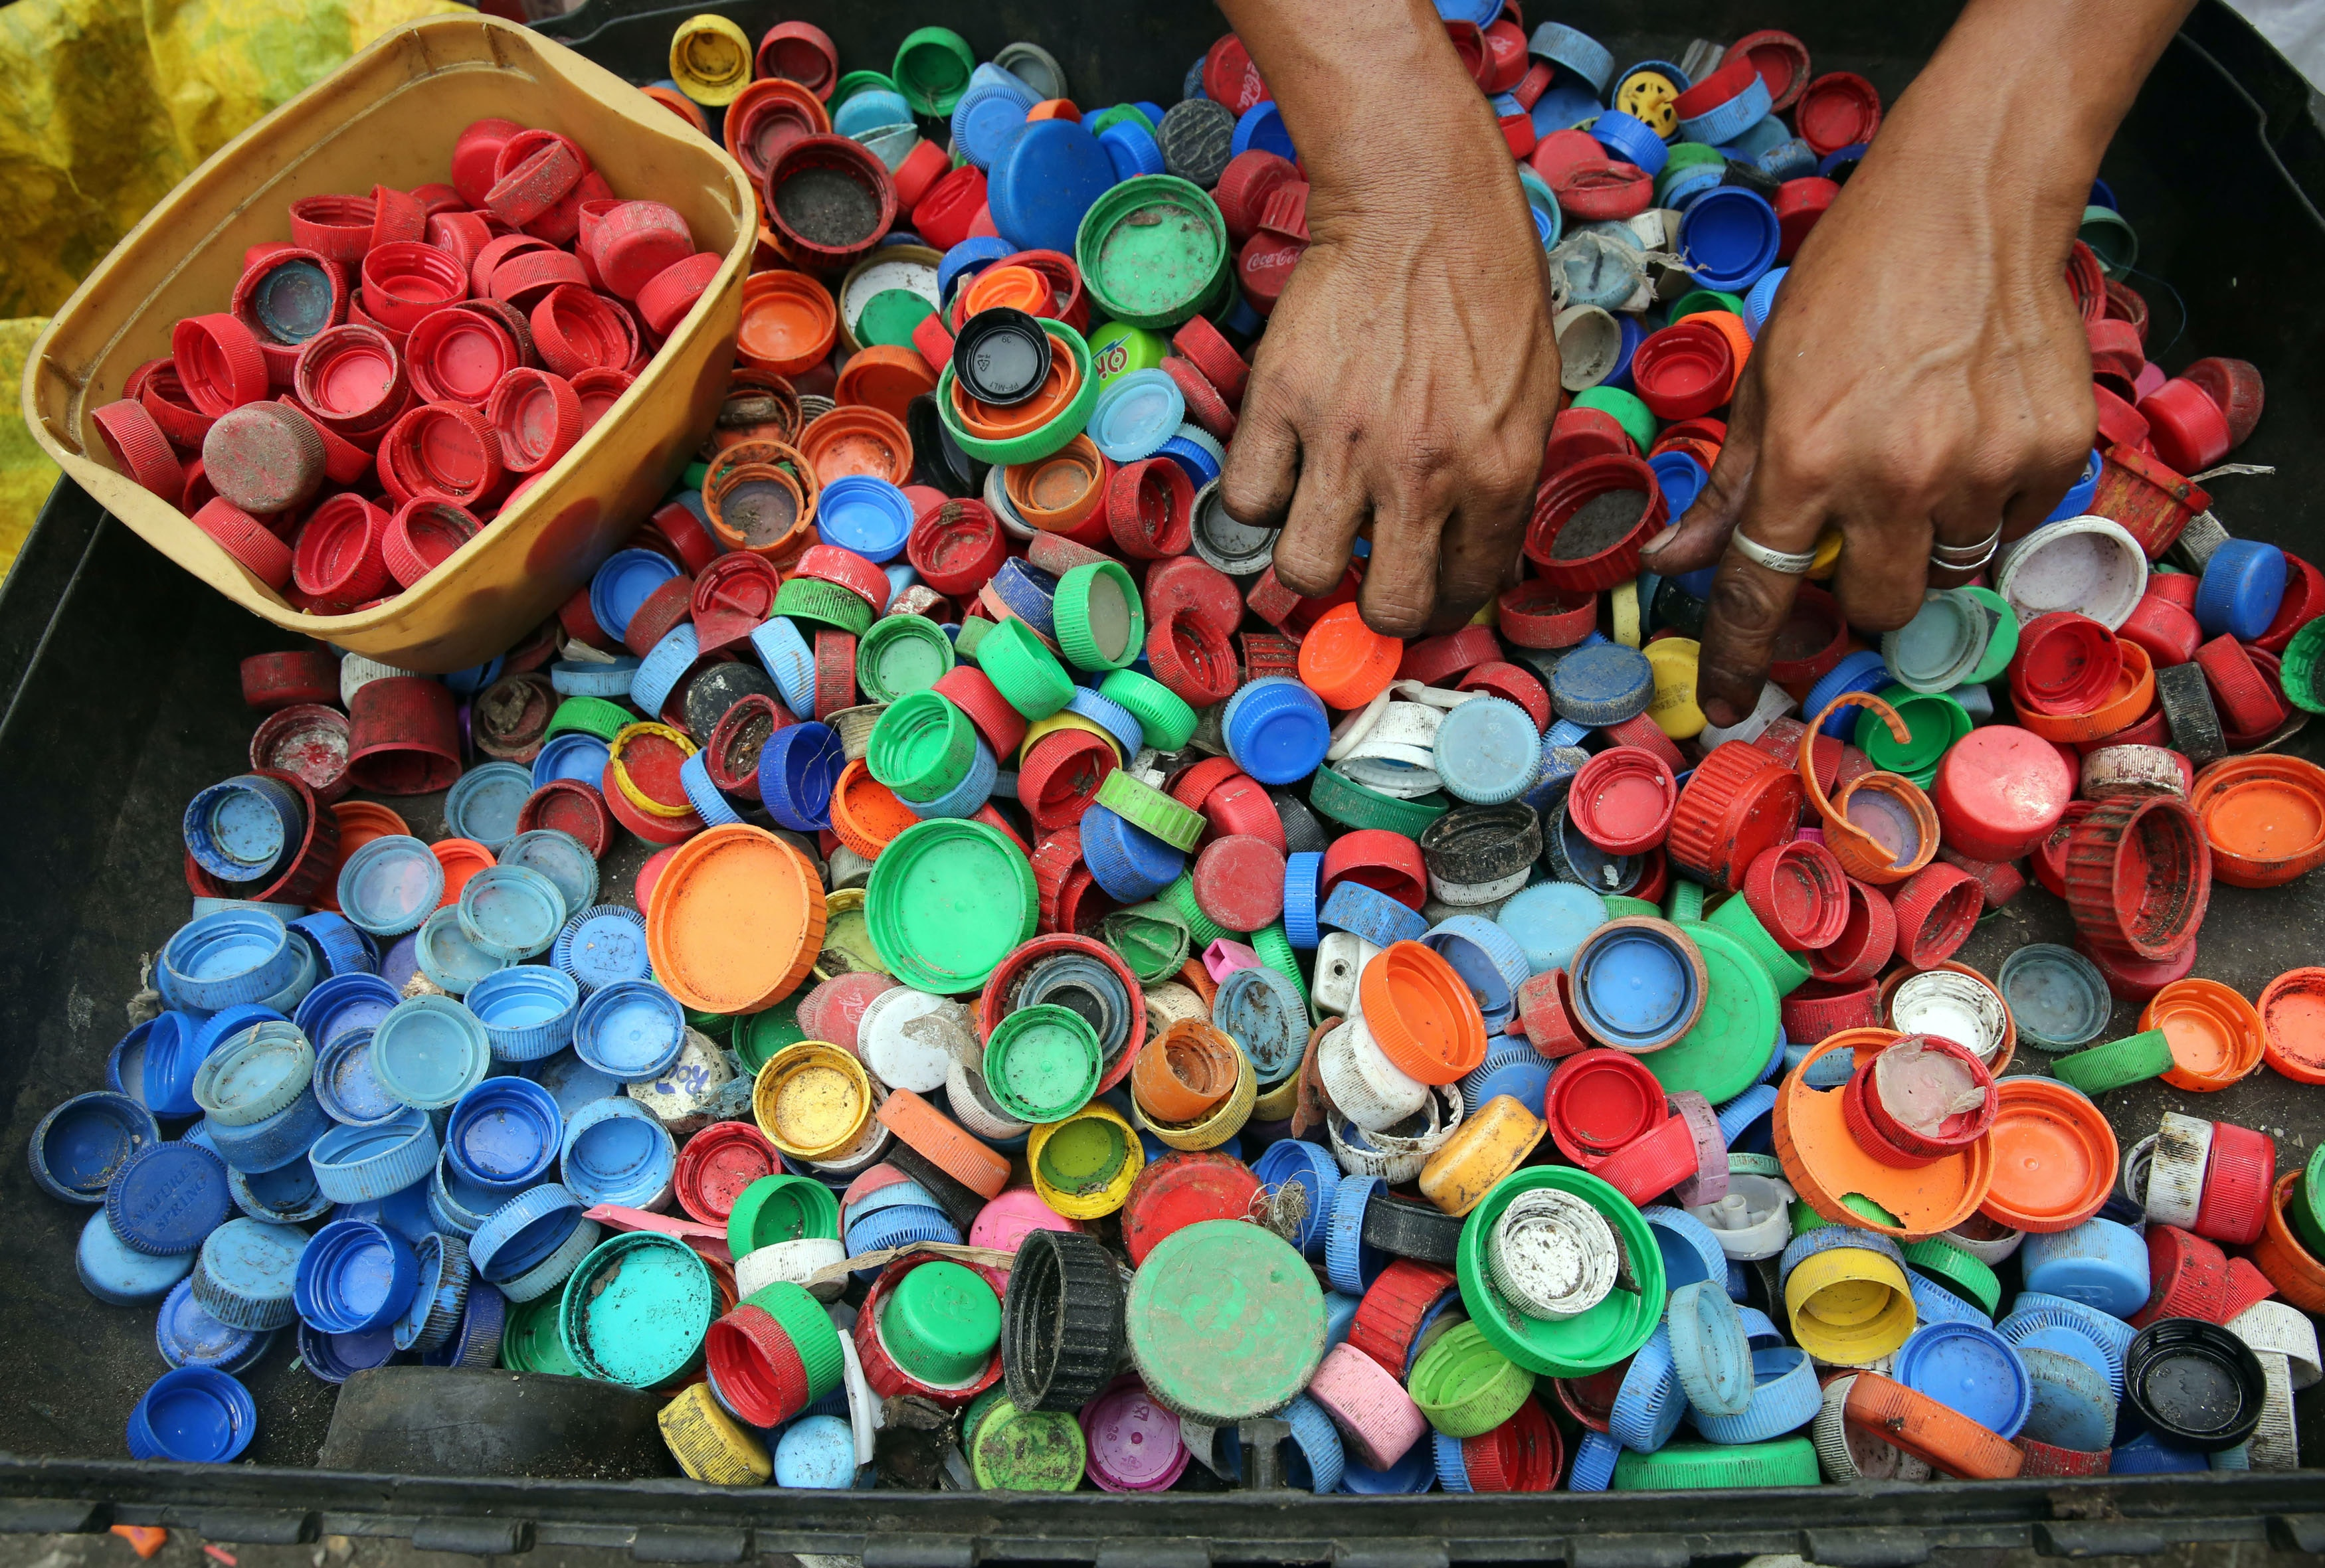 Difference Between Recycling and Upcycling